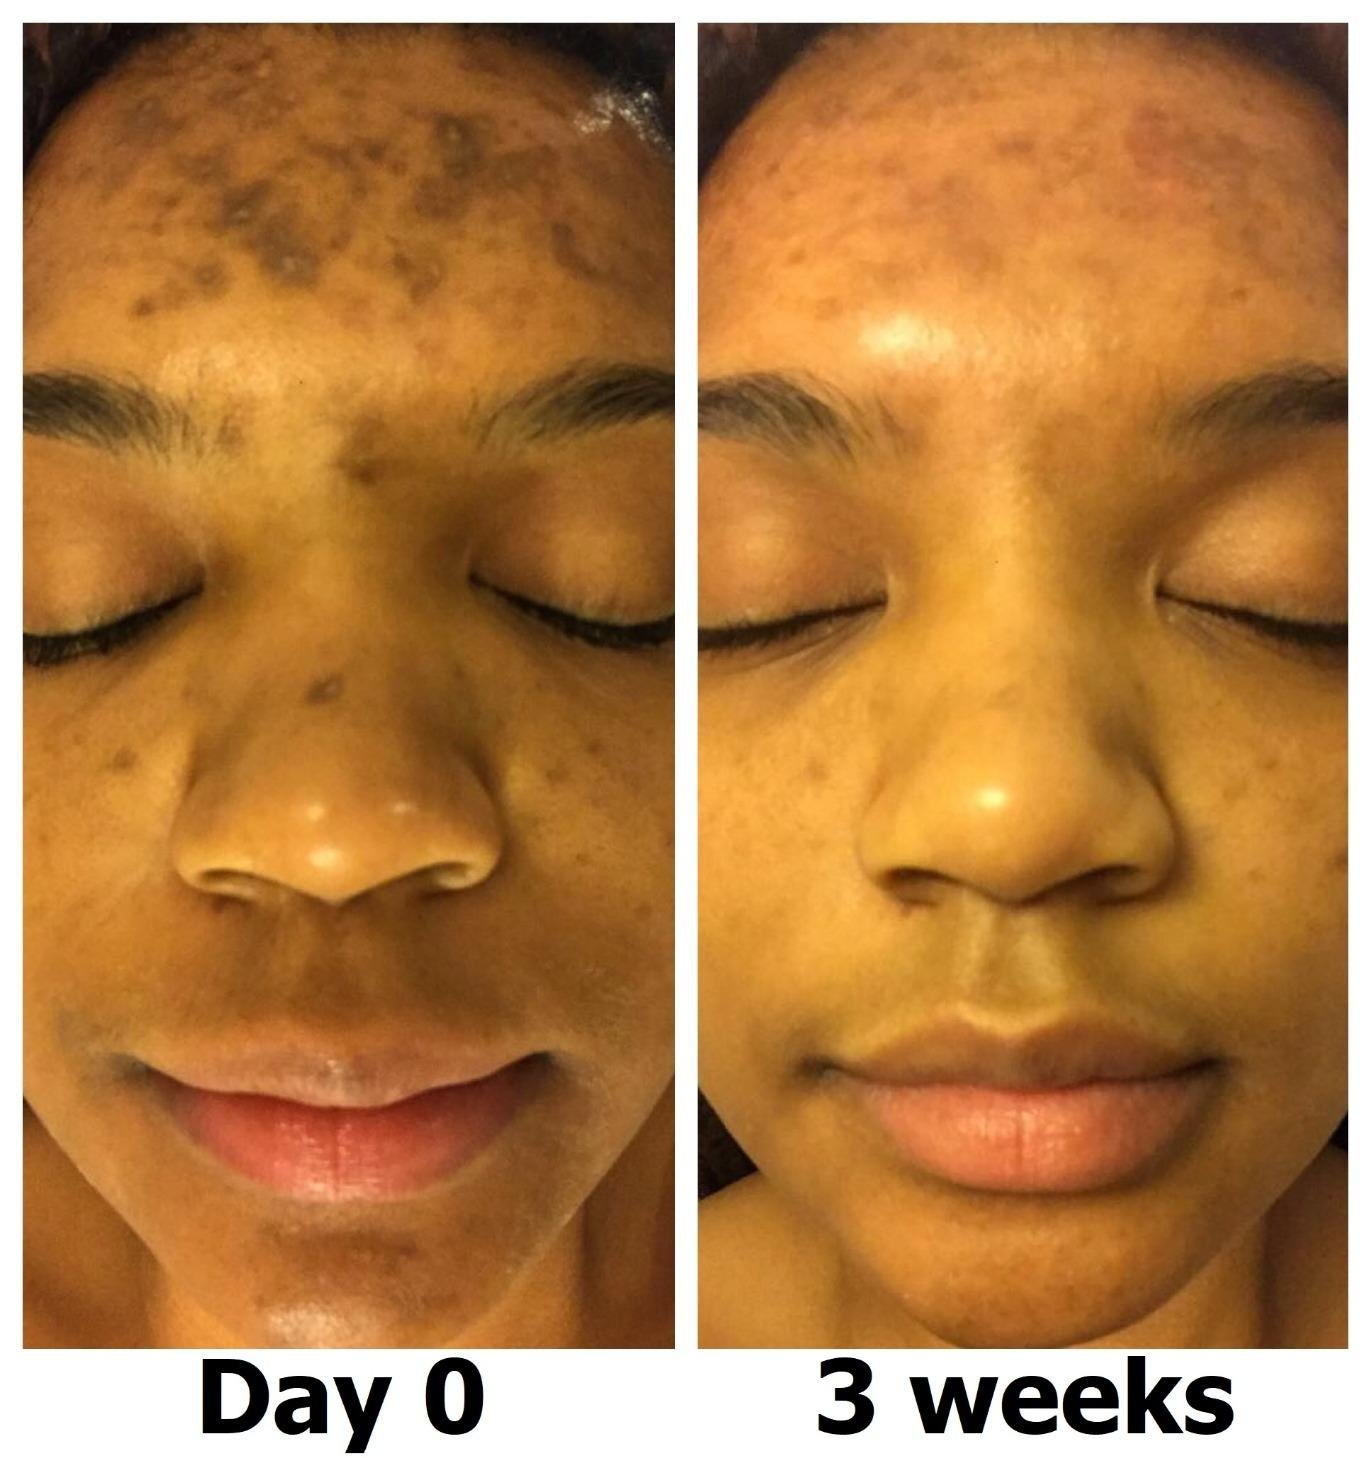 on left, dark spots on forehead. on right, same forehead with less dark spots